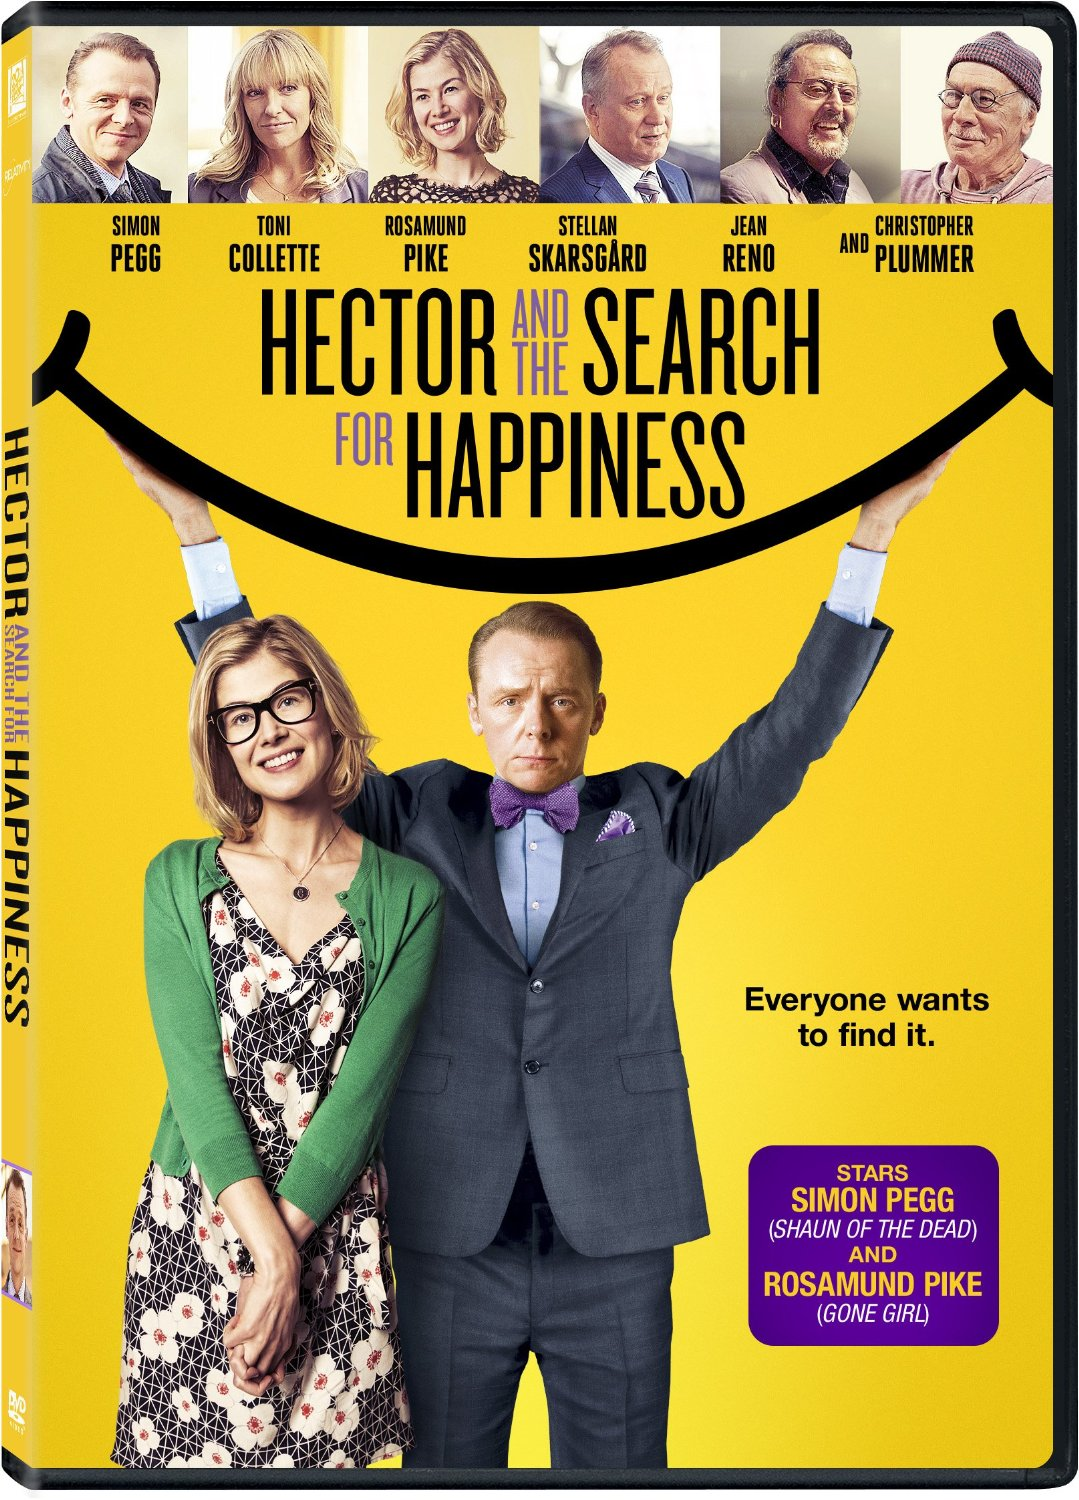 Hector & The Search For Happiness [Movie] - Hector & The Search For Happiness